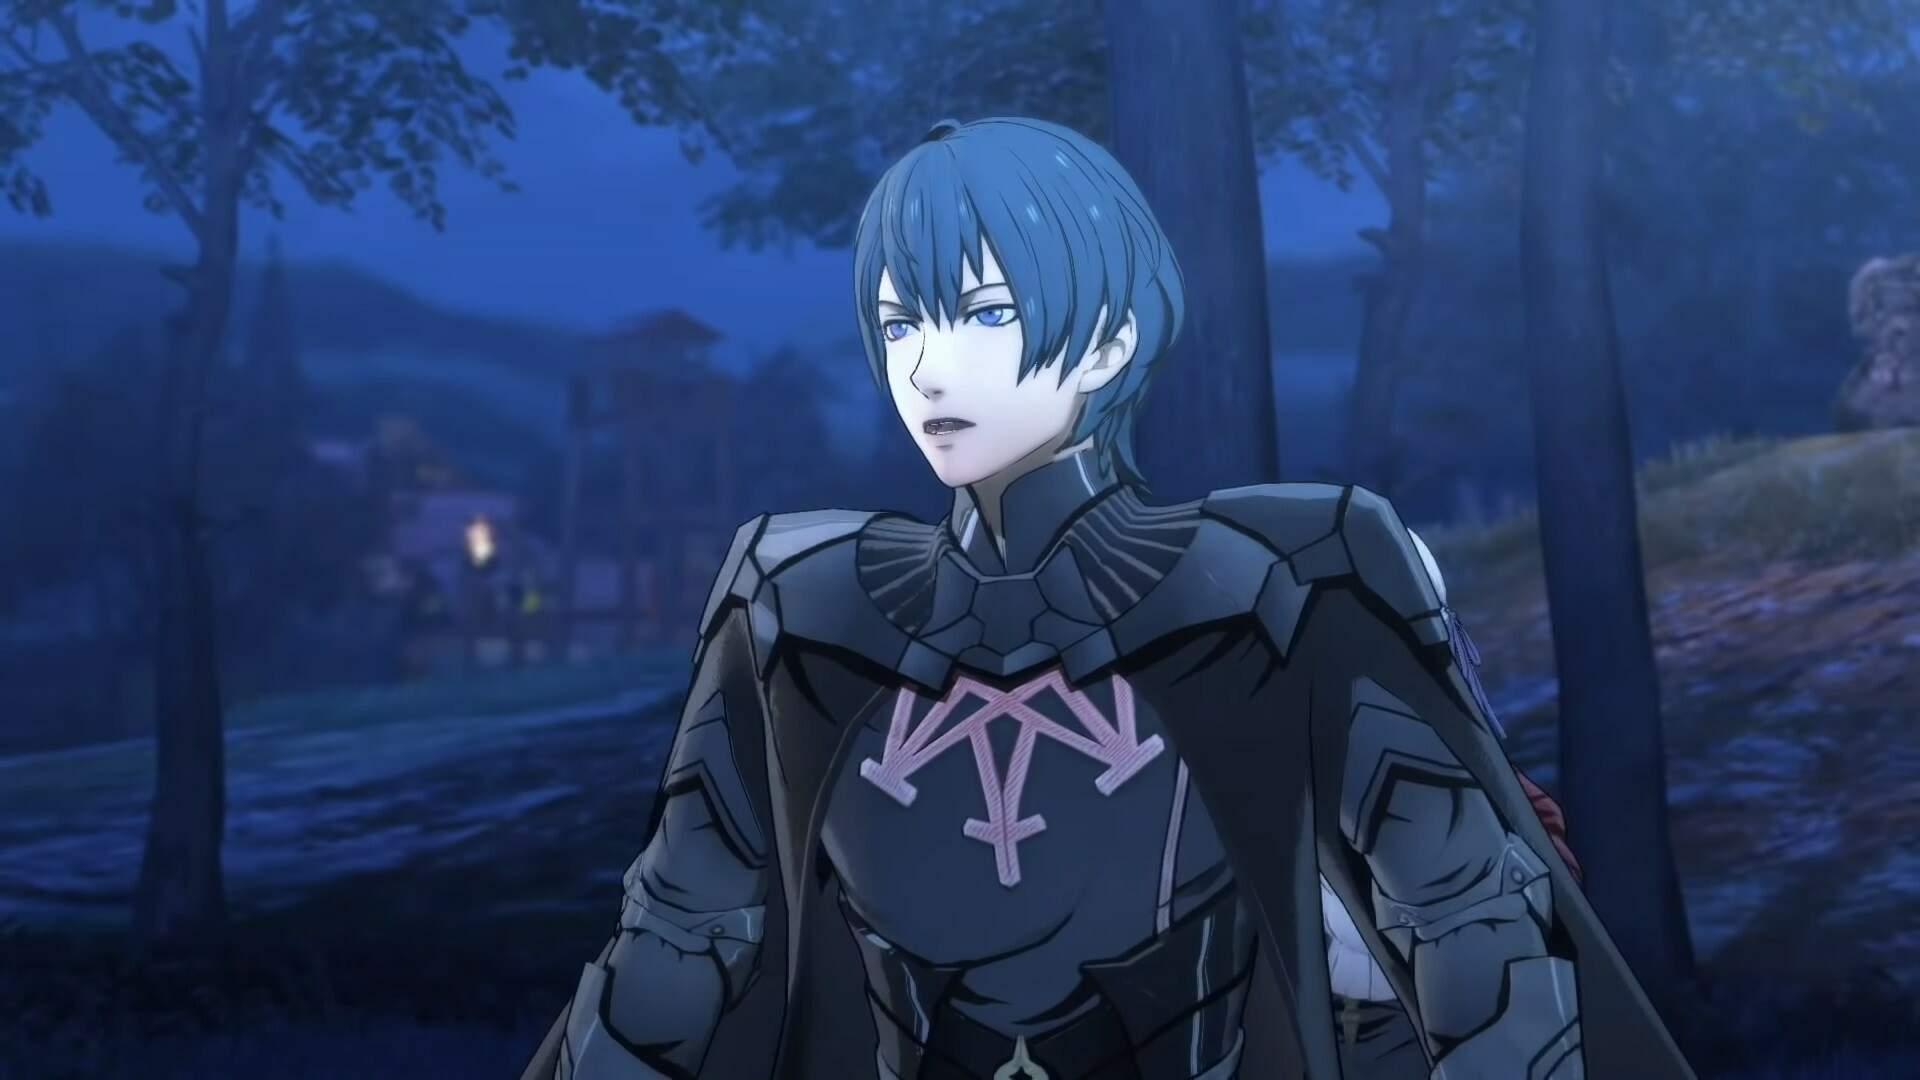 Fire Emblem: Three Houses Avatar Byleth's Appearance Won't be Customizable Outside of Gender, Nintendo Says